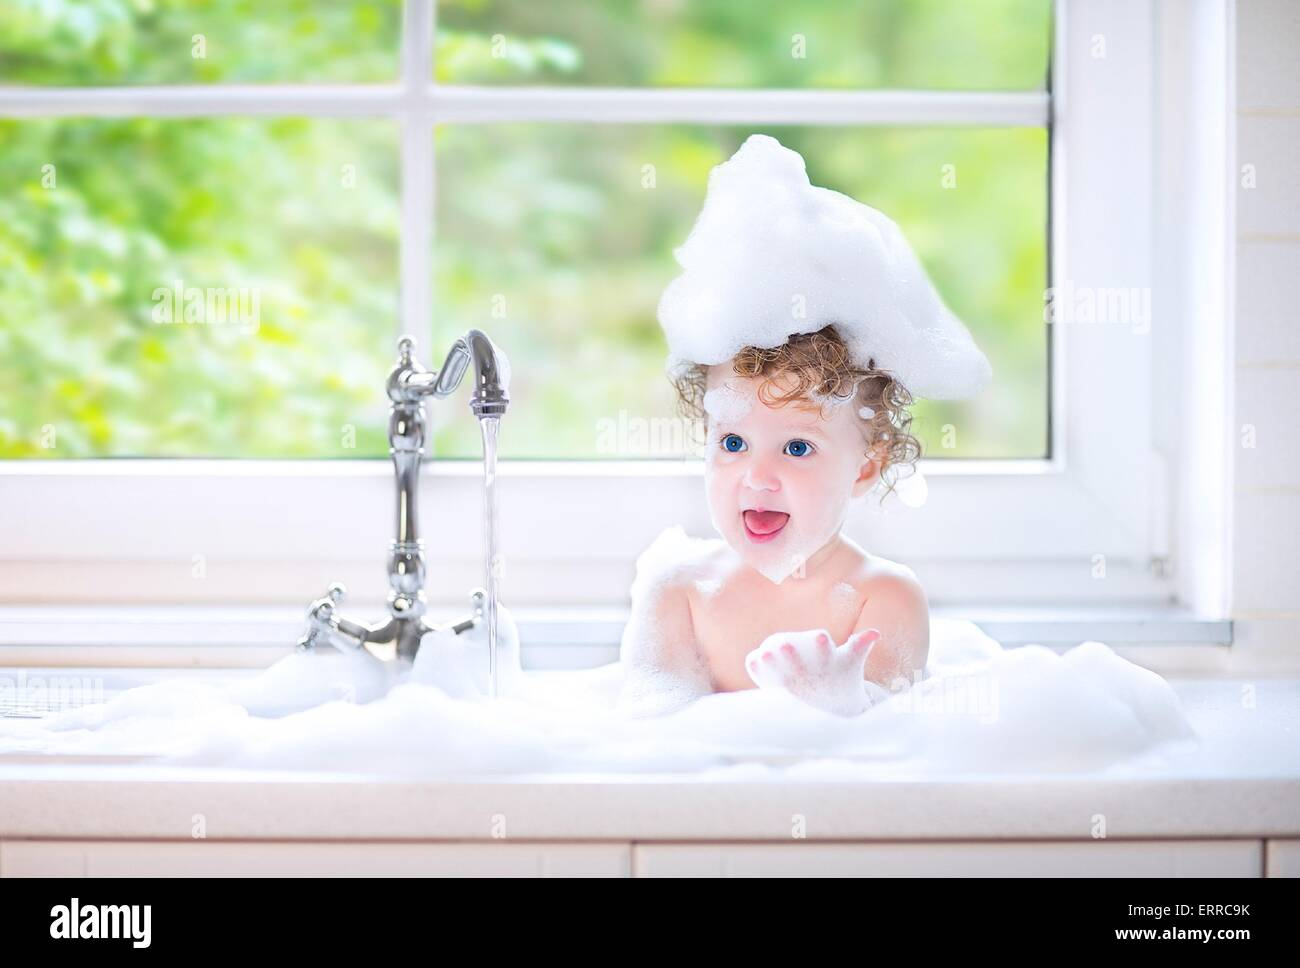 Funny Little Baby Girl With Wet Curly Hair Taking Bath In